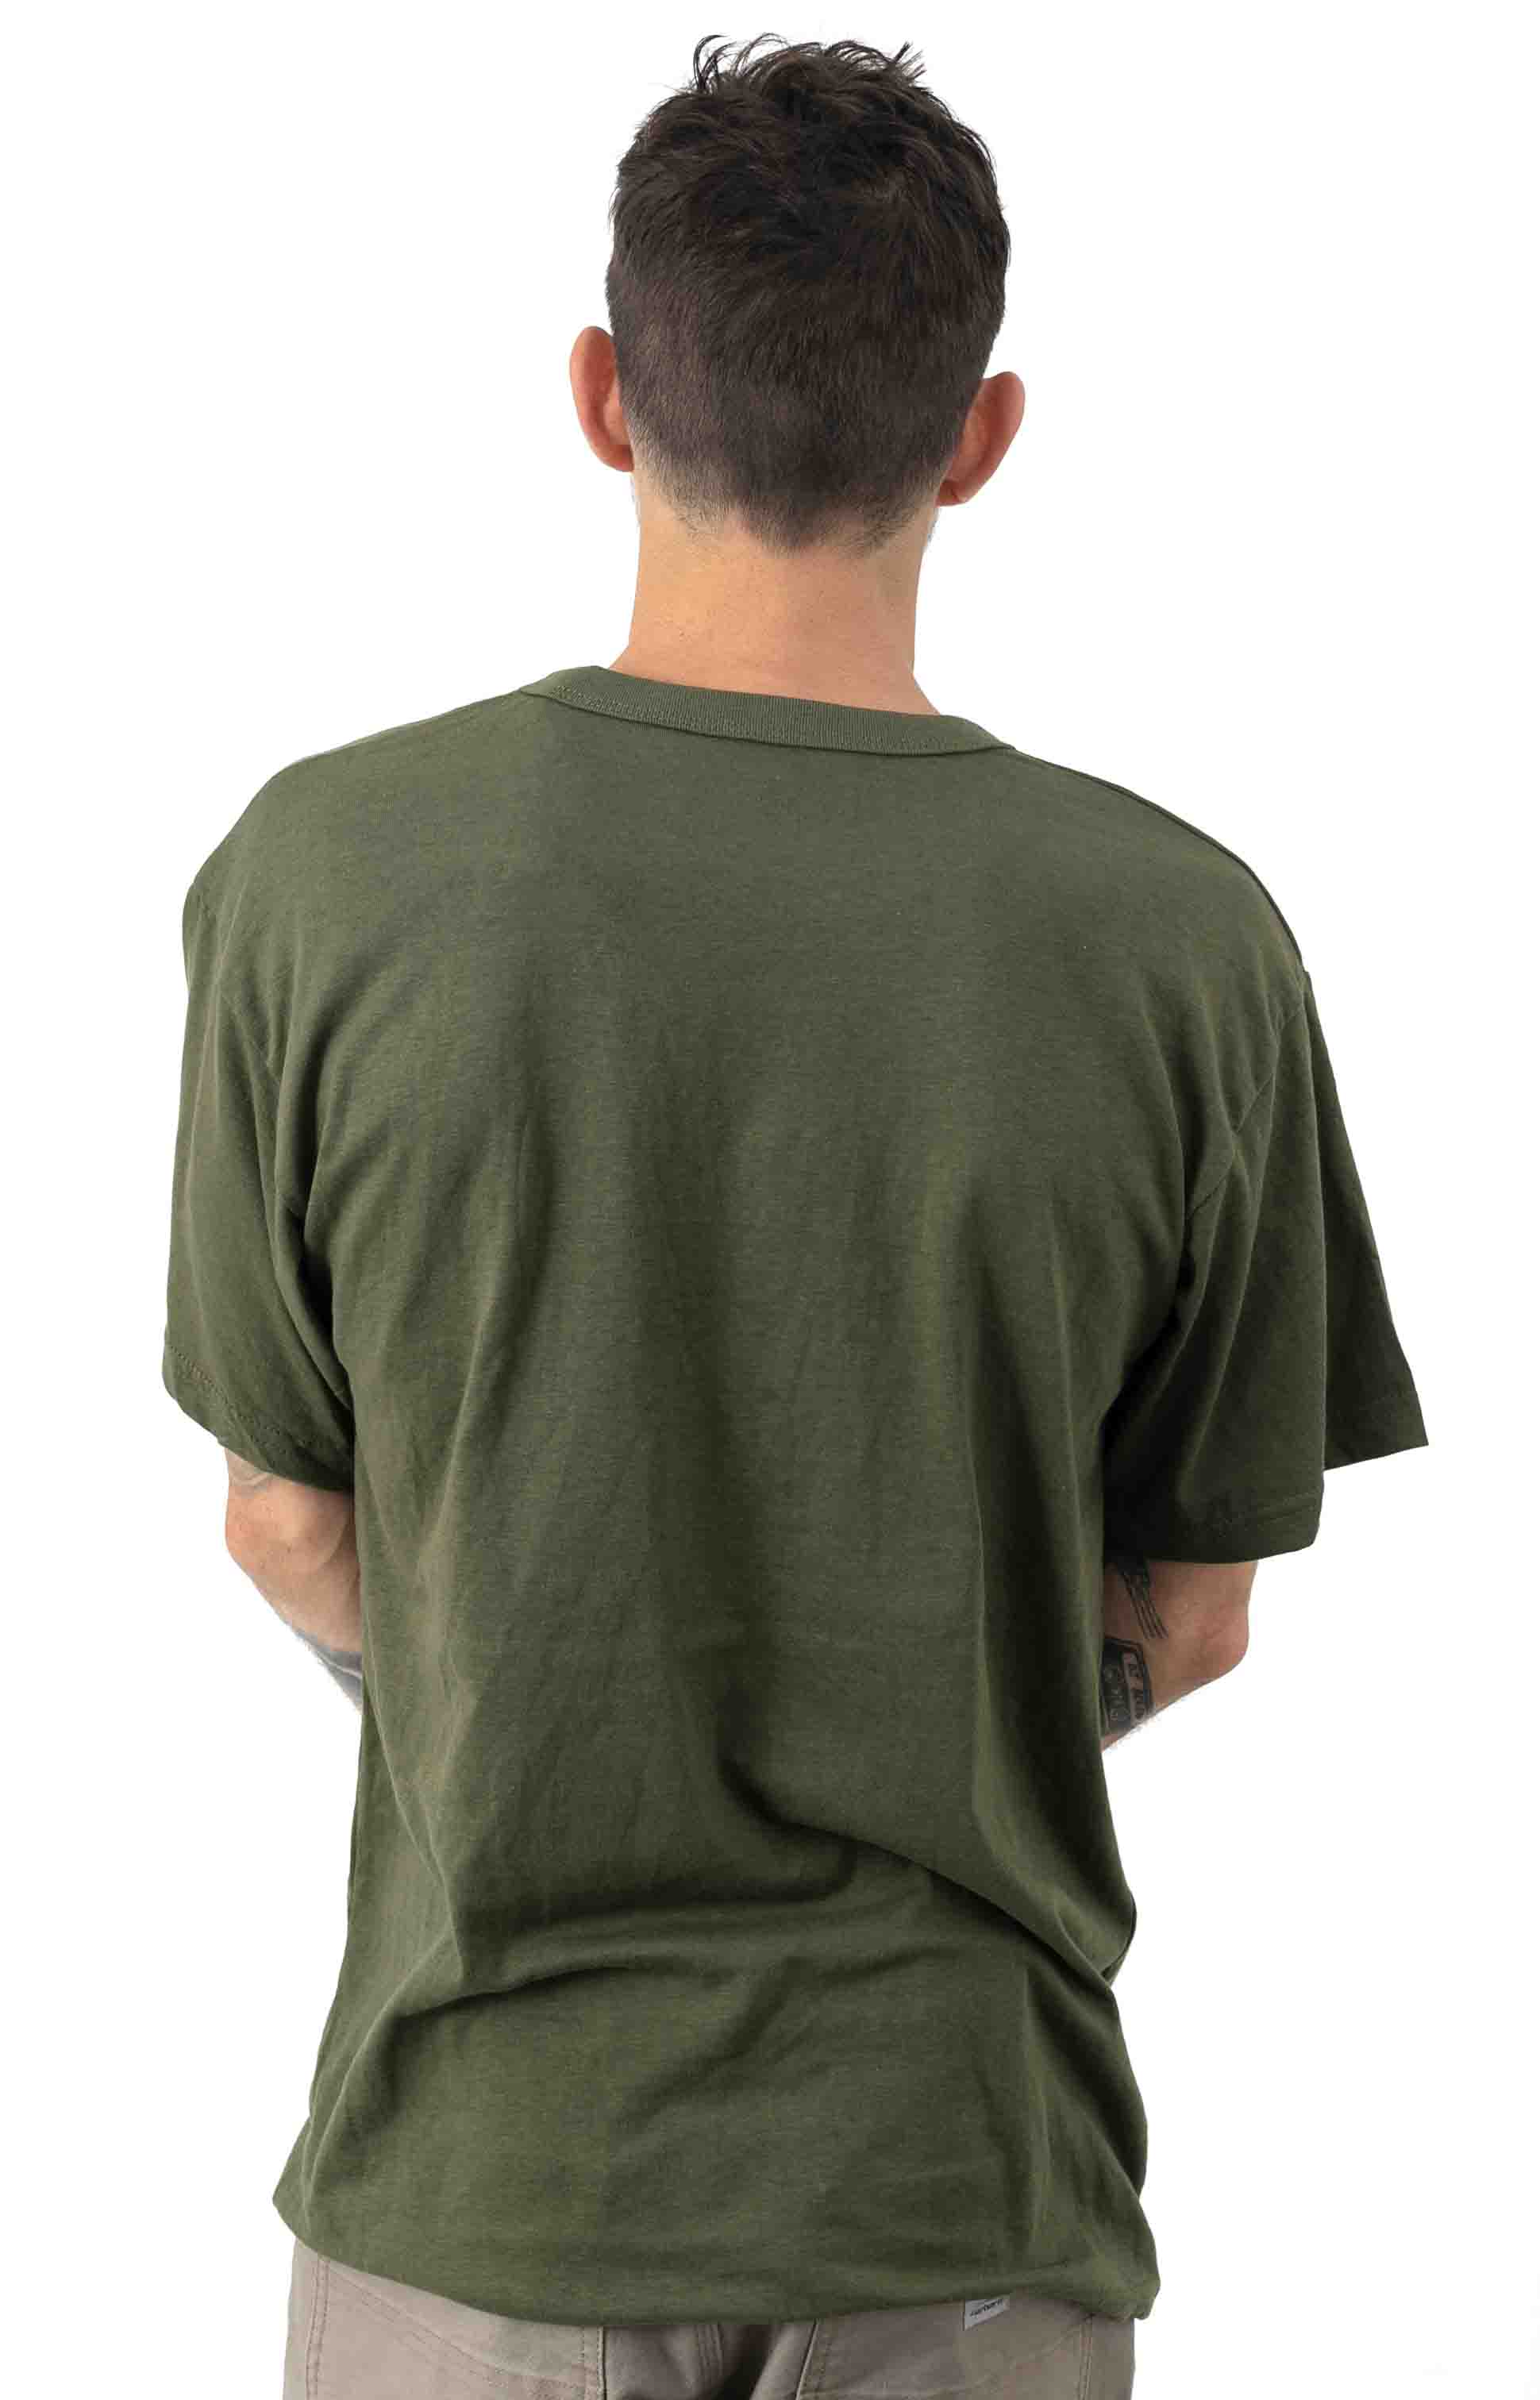 (6979) Solid Color Cotton / Polyester Blend Military T-Shirt - Olive Drab 3